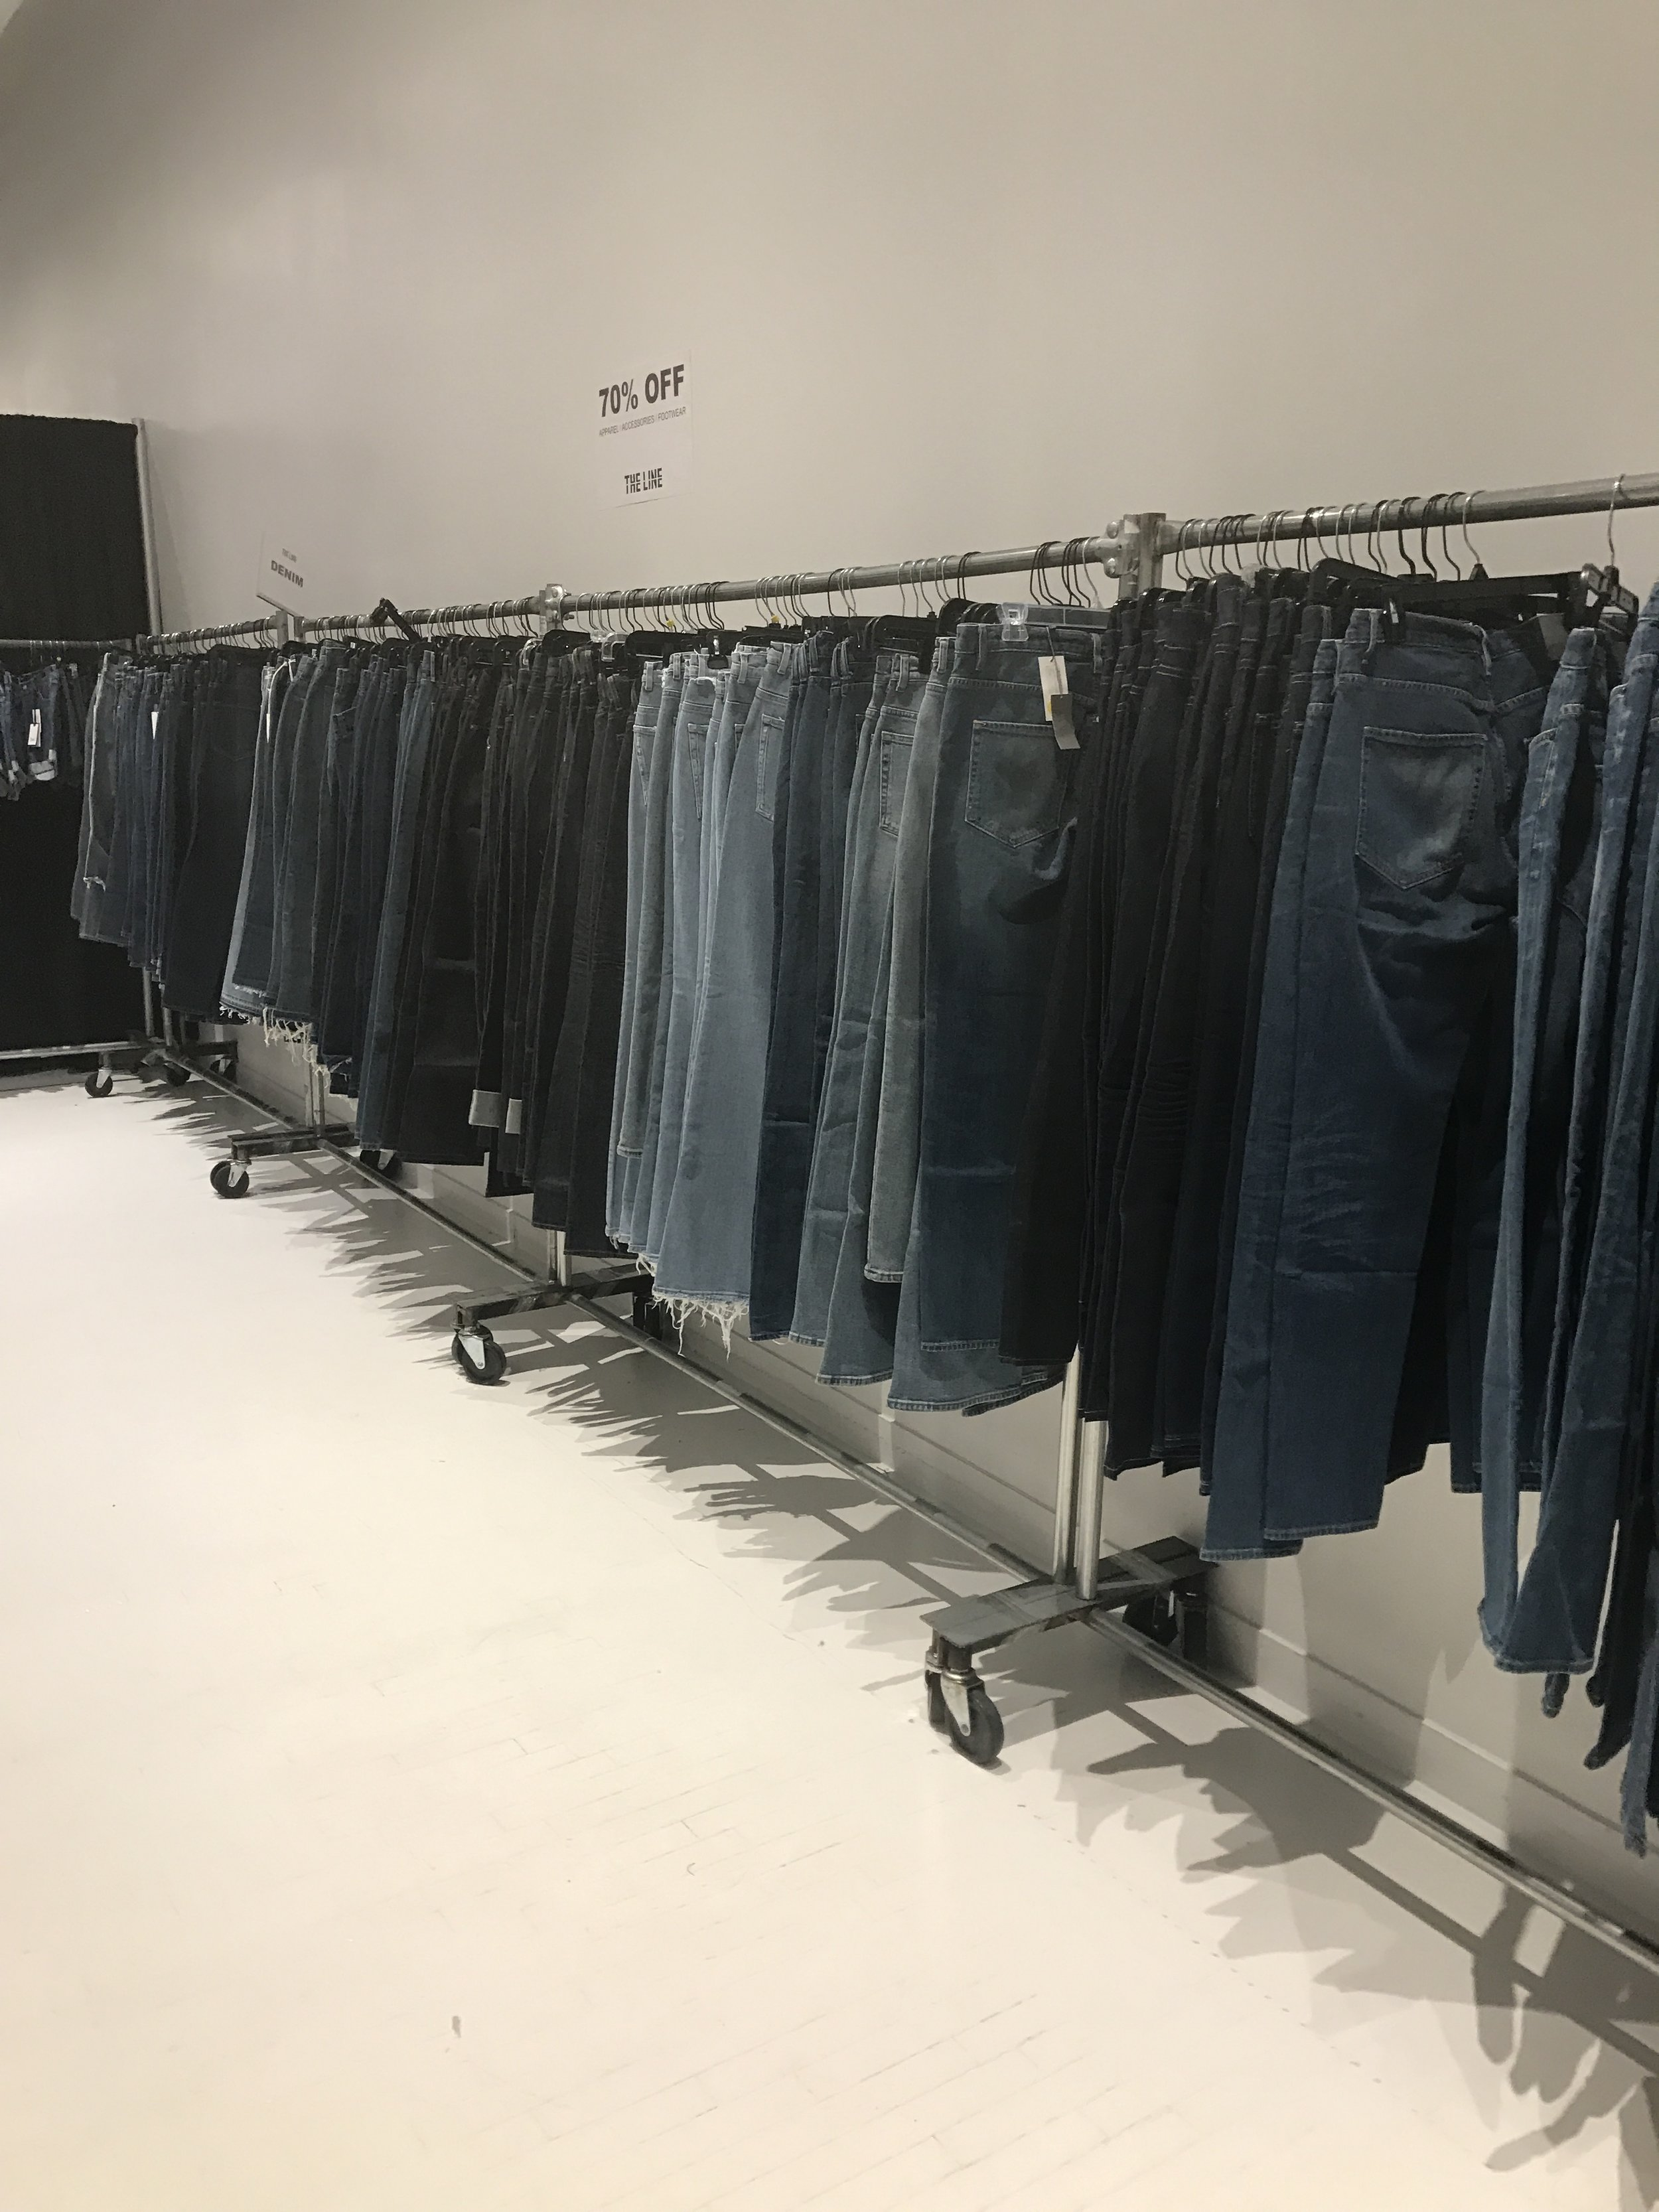 As you progress further down the right you will find denim by Acne Studios, 3XL, and Alexander Wang to name a few. I spotted a varitey of sizes ranging from 24-32.